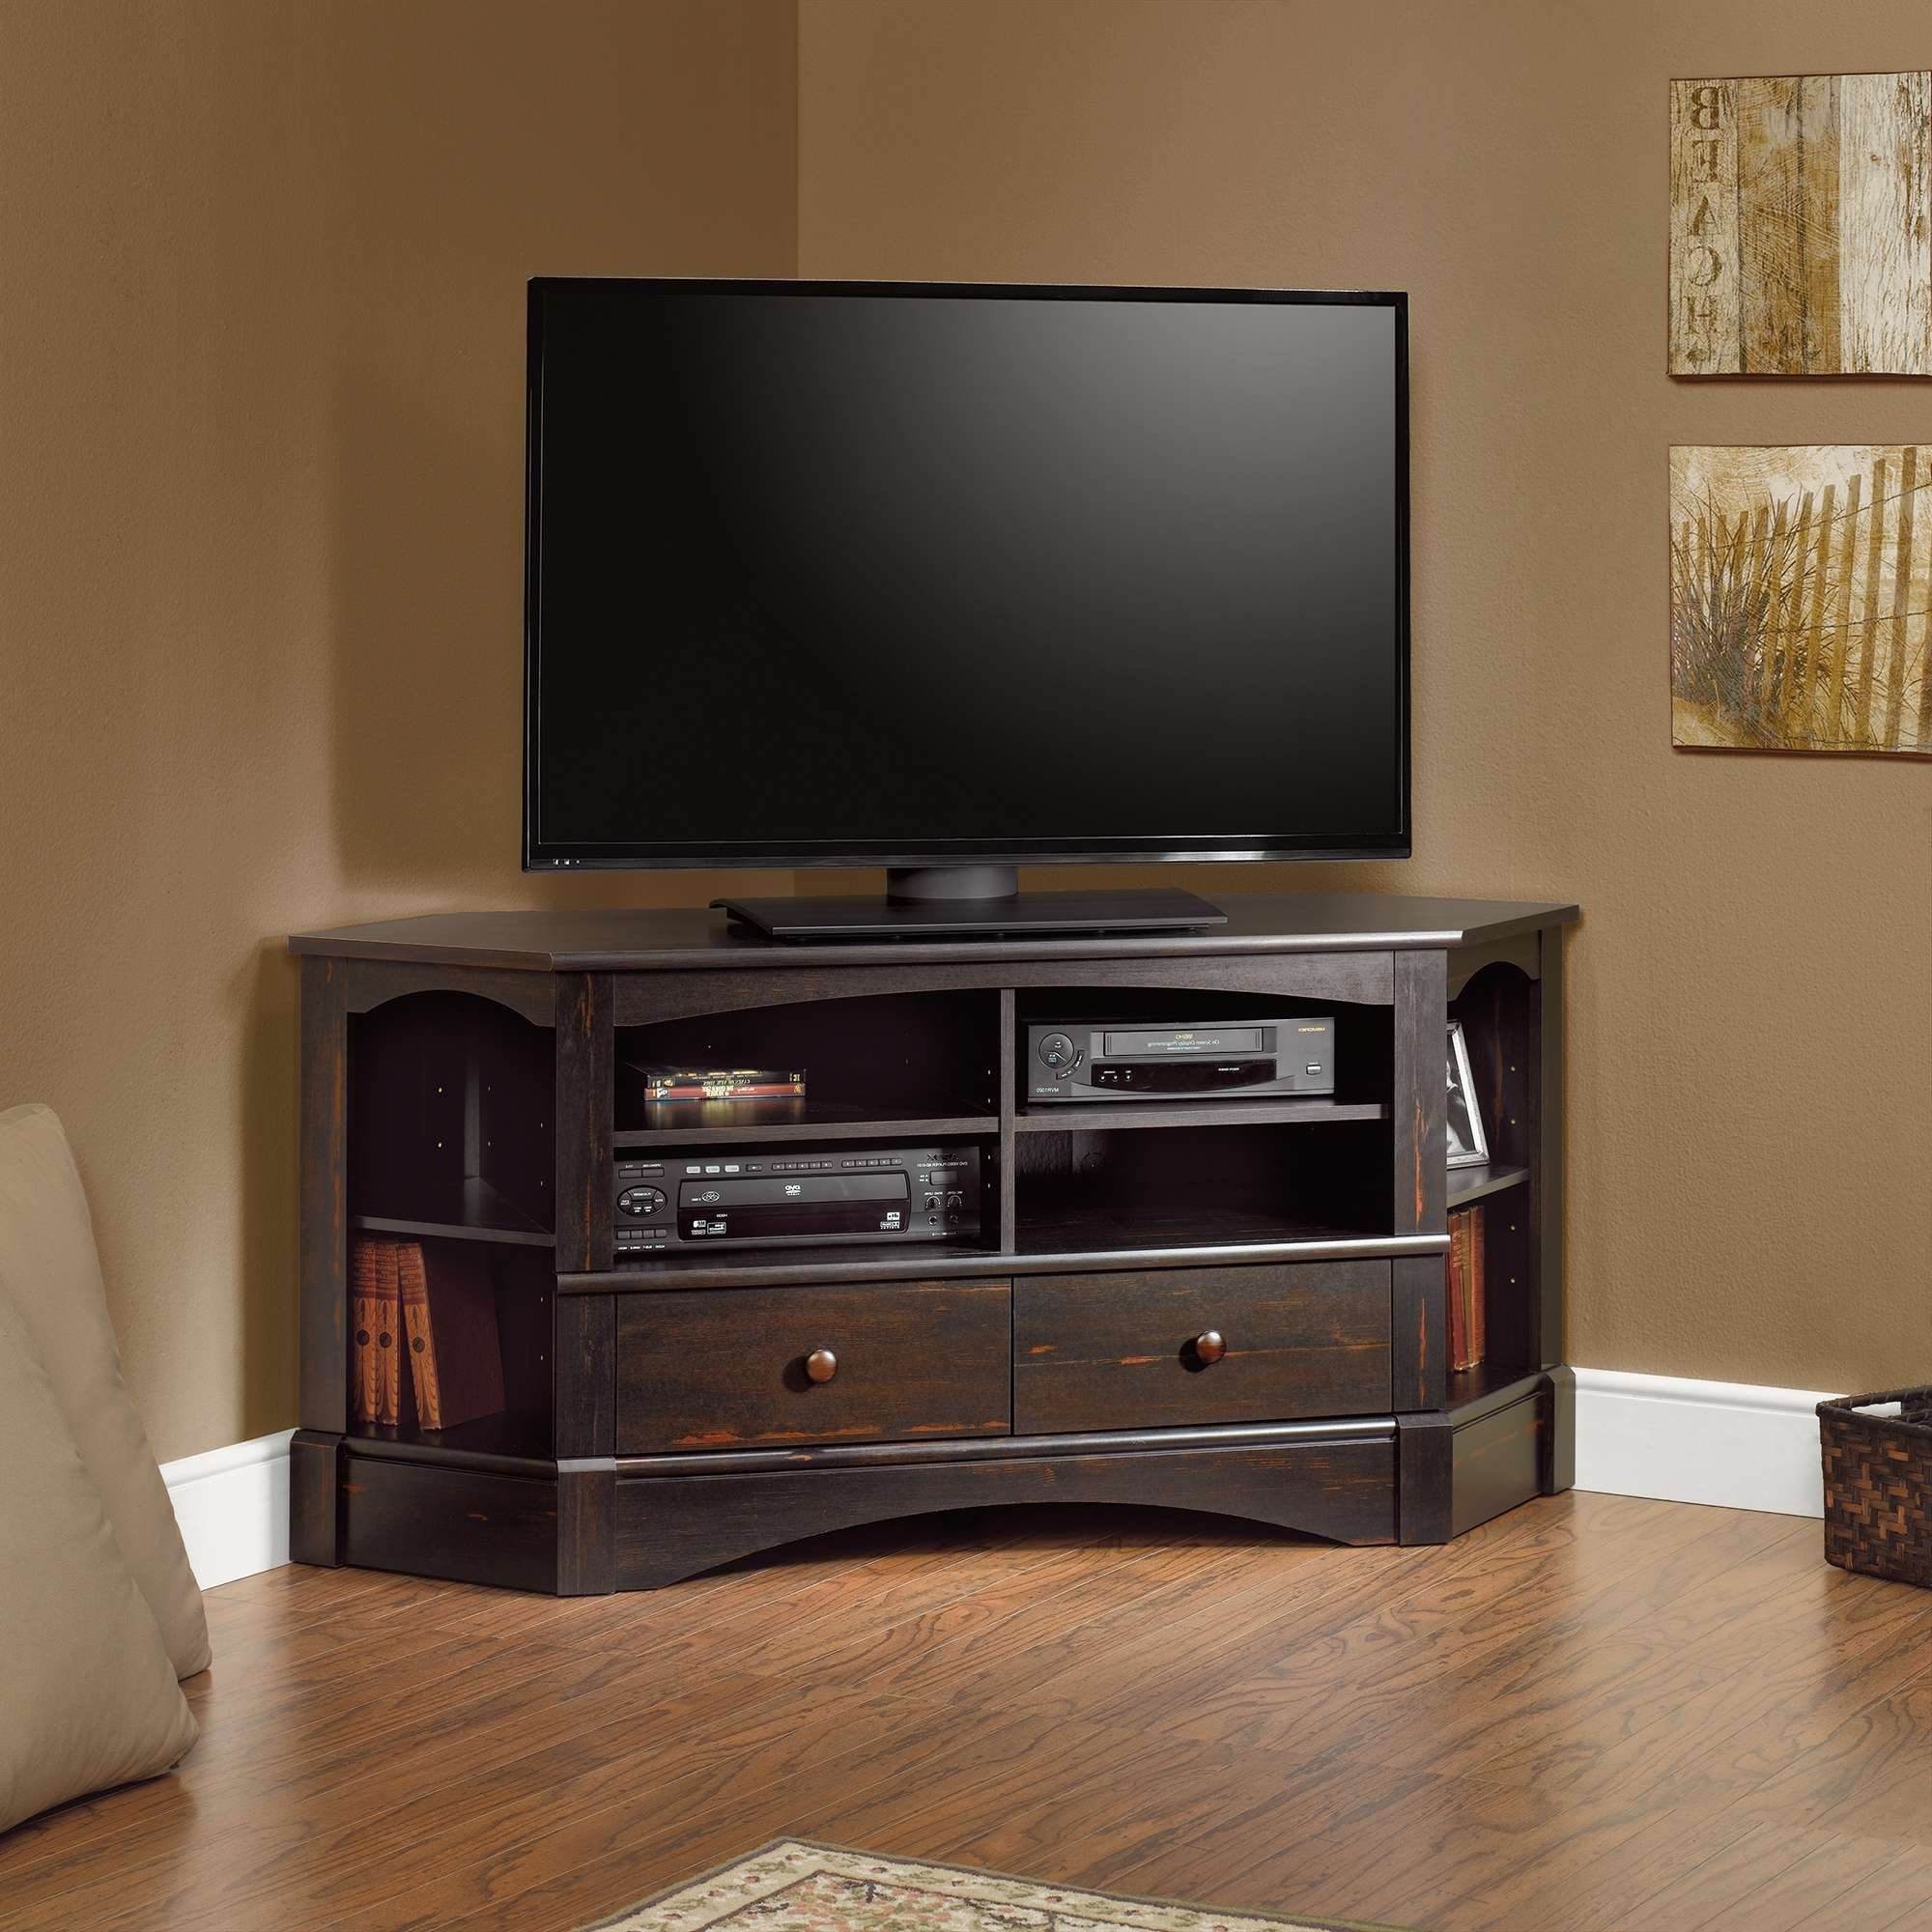 Harbor View | Corner Entertainment Credenza | 402902 | Sauder Inside Large Corner Tv Stands (View 8 of 15)